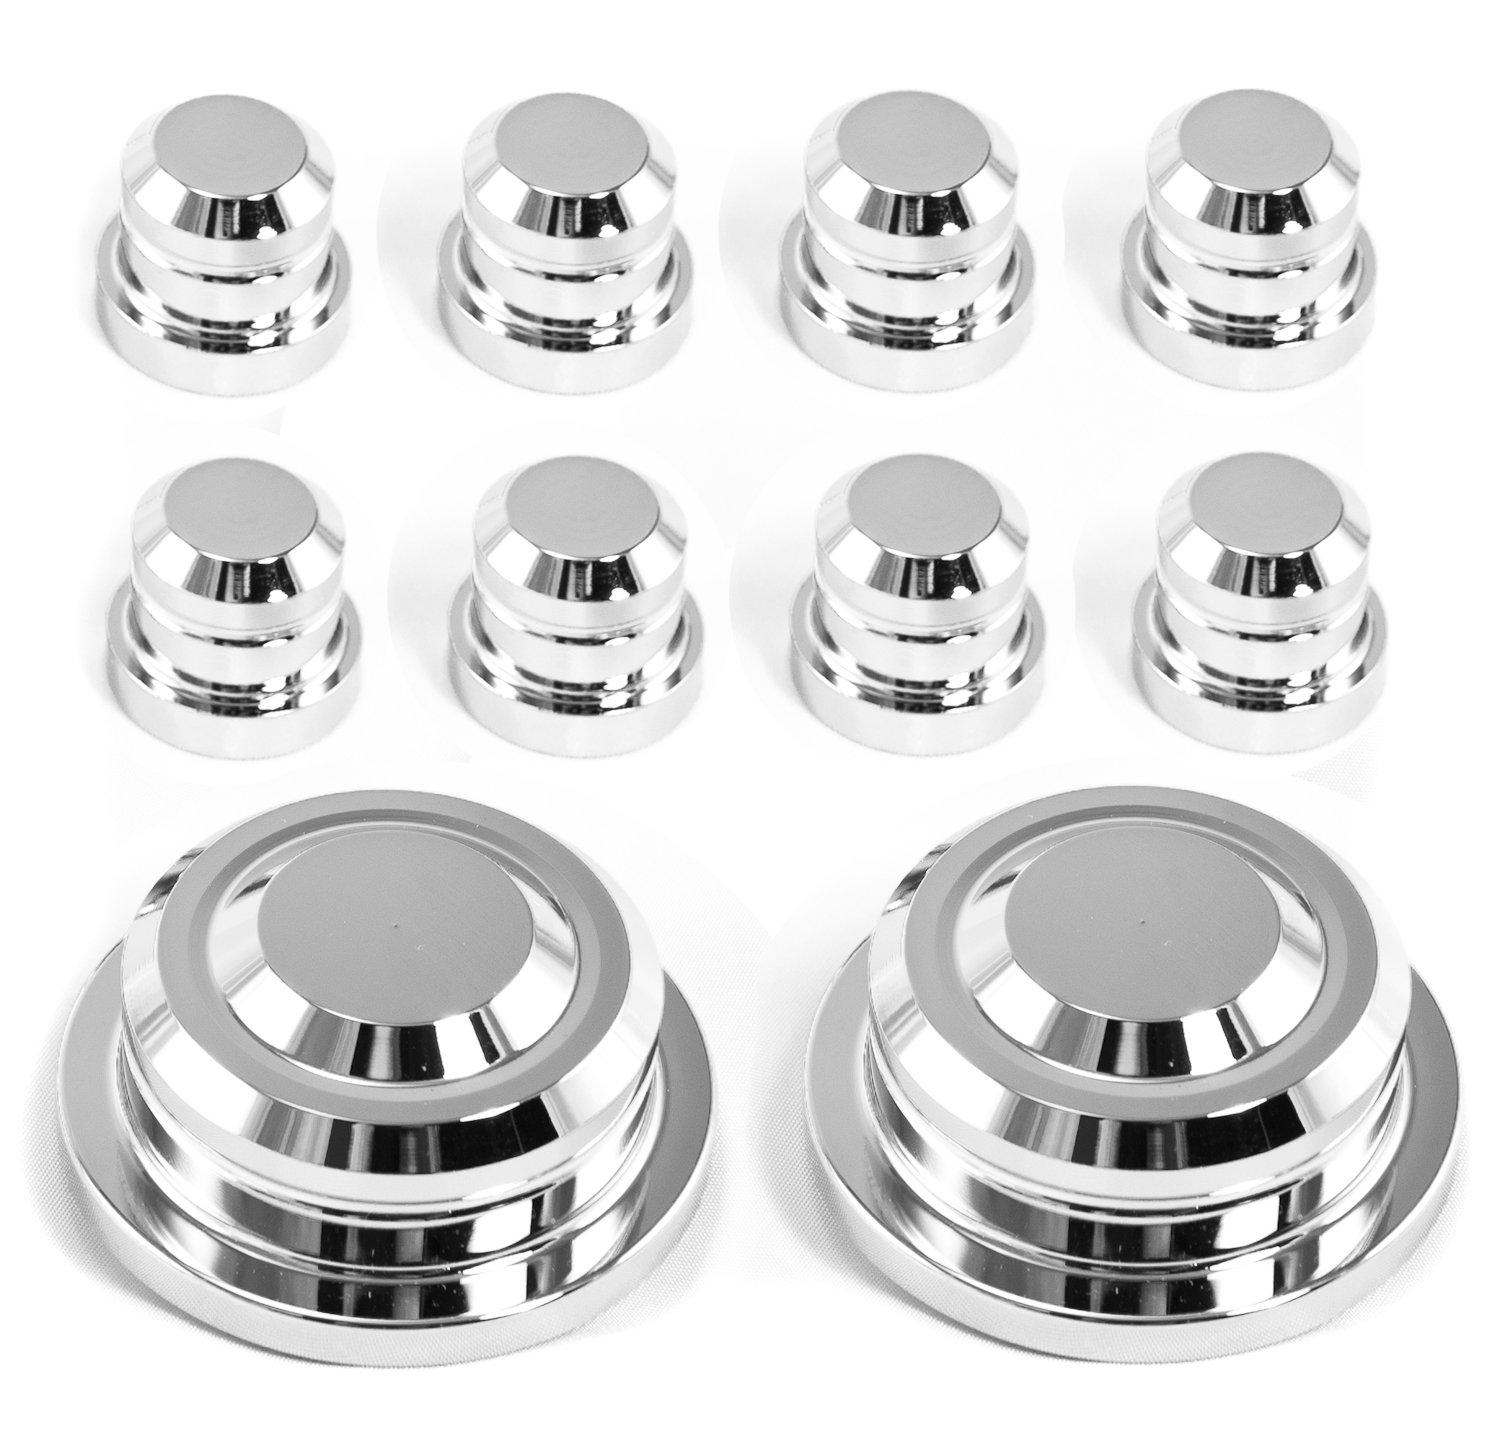 2005-2010 Mustang Front Strut Tower Cap Covers and Nut Covers 10pc VMS Racing